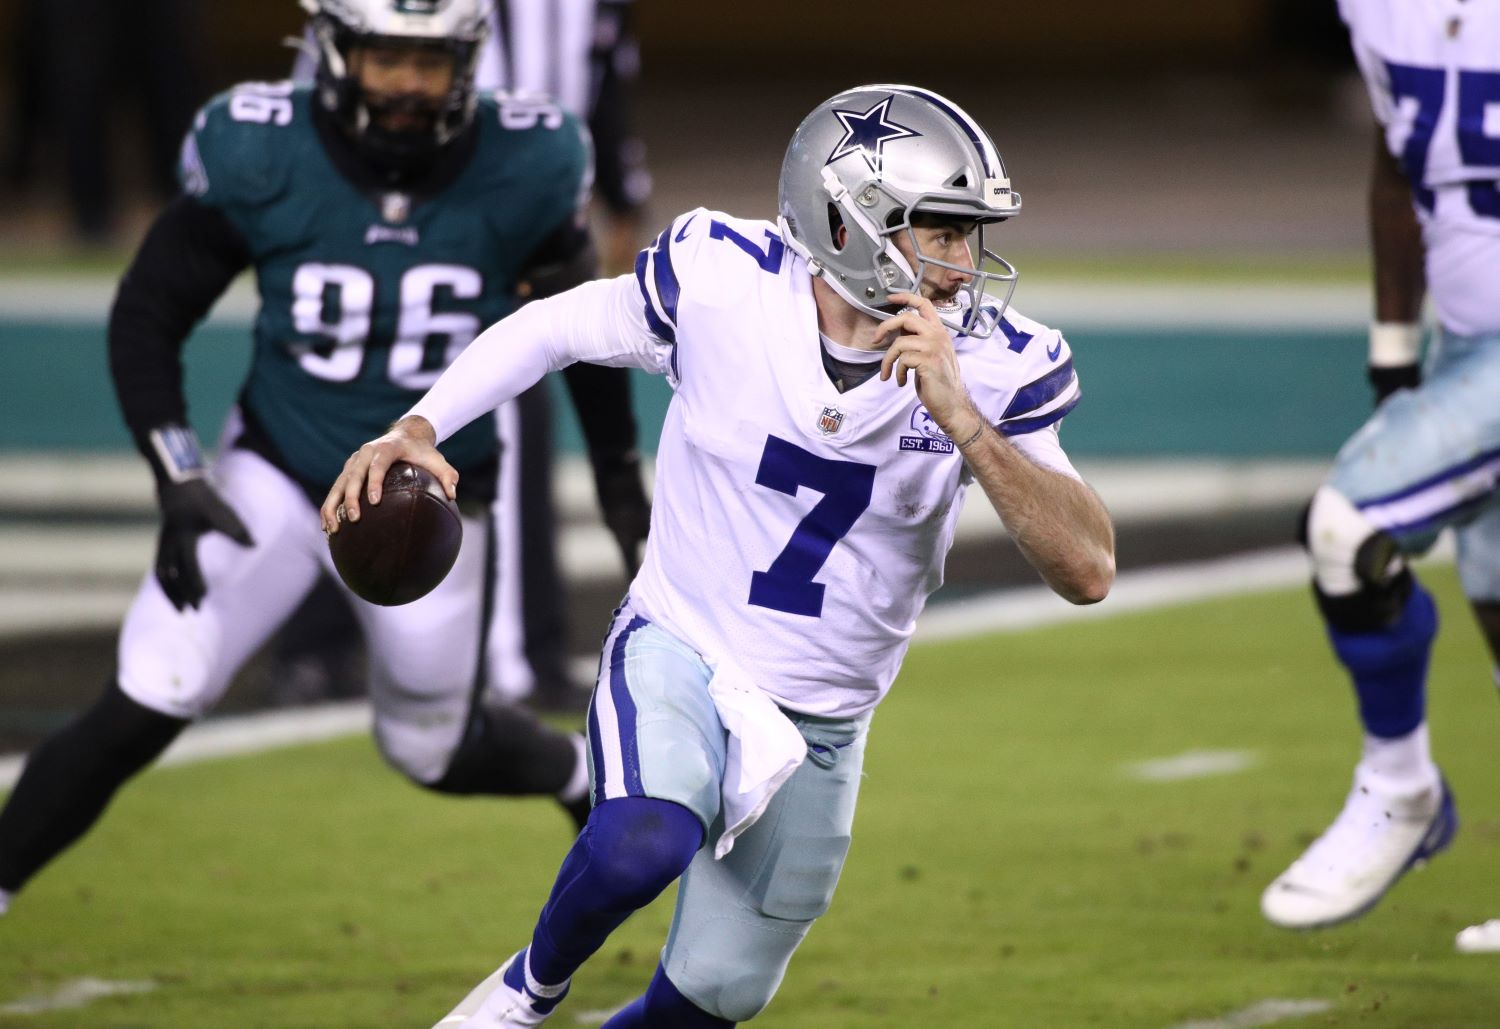 The Dallas Cowboys may bench quarterback Ben DiNucci for Cooper Rush, who has completed just one pass since entering the NFL in 2017.